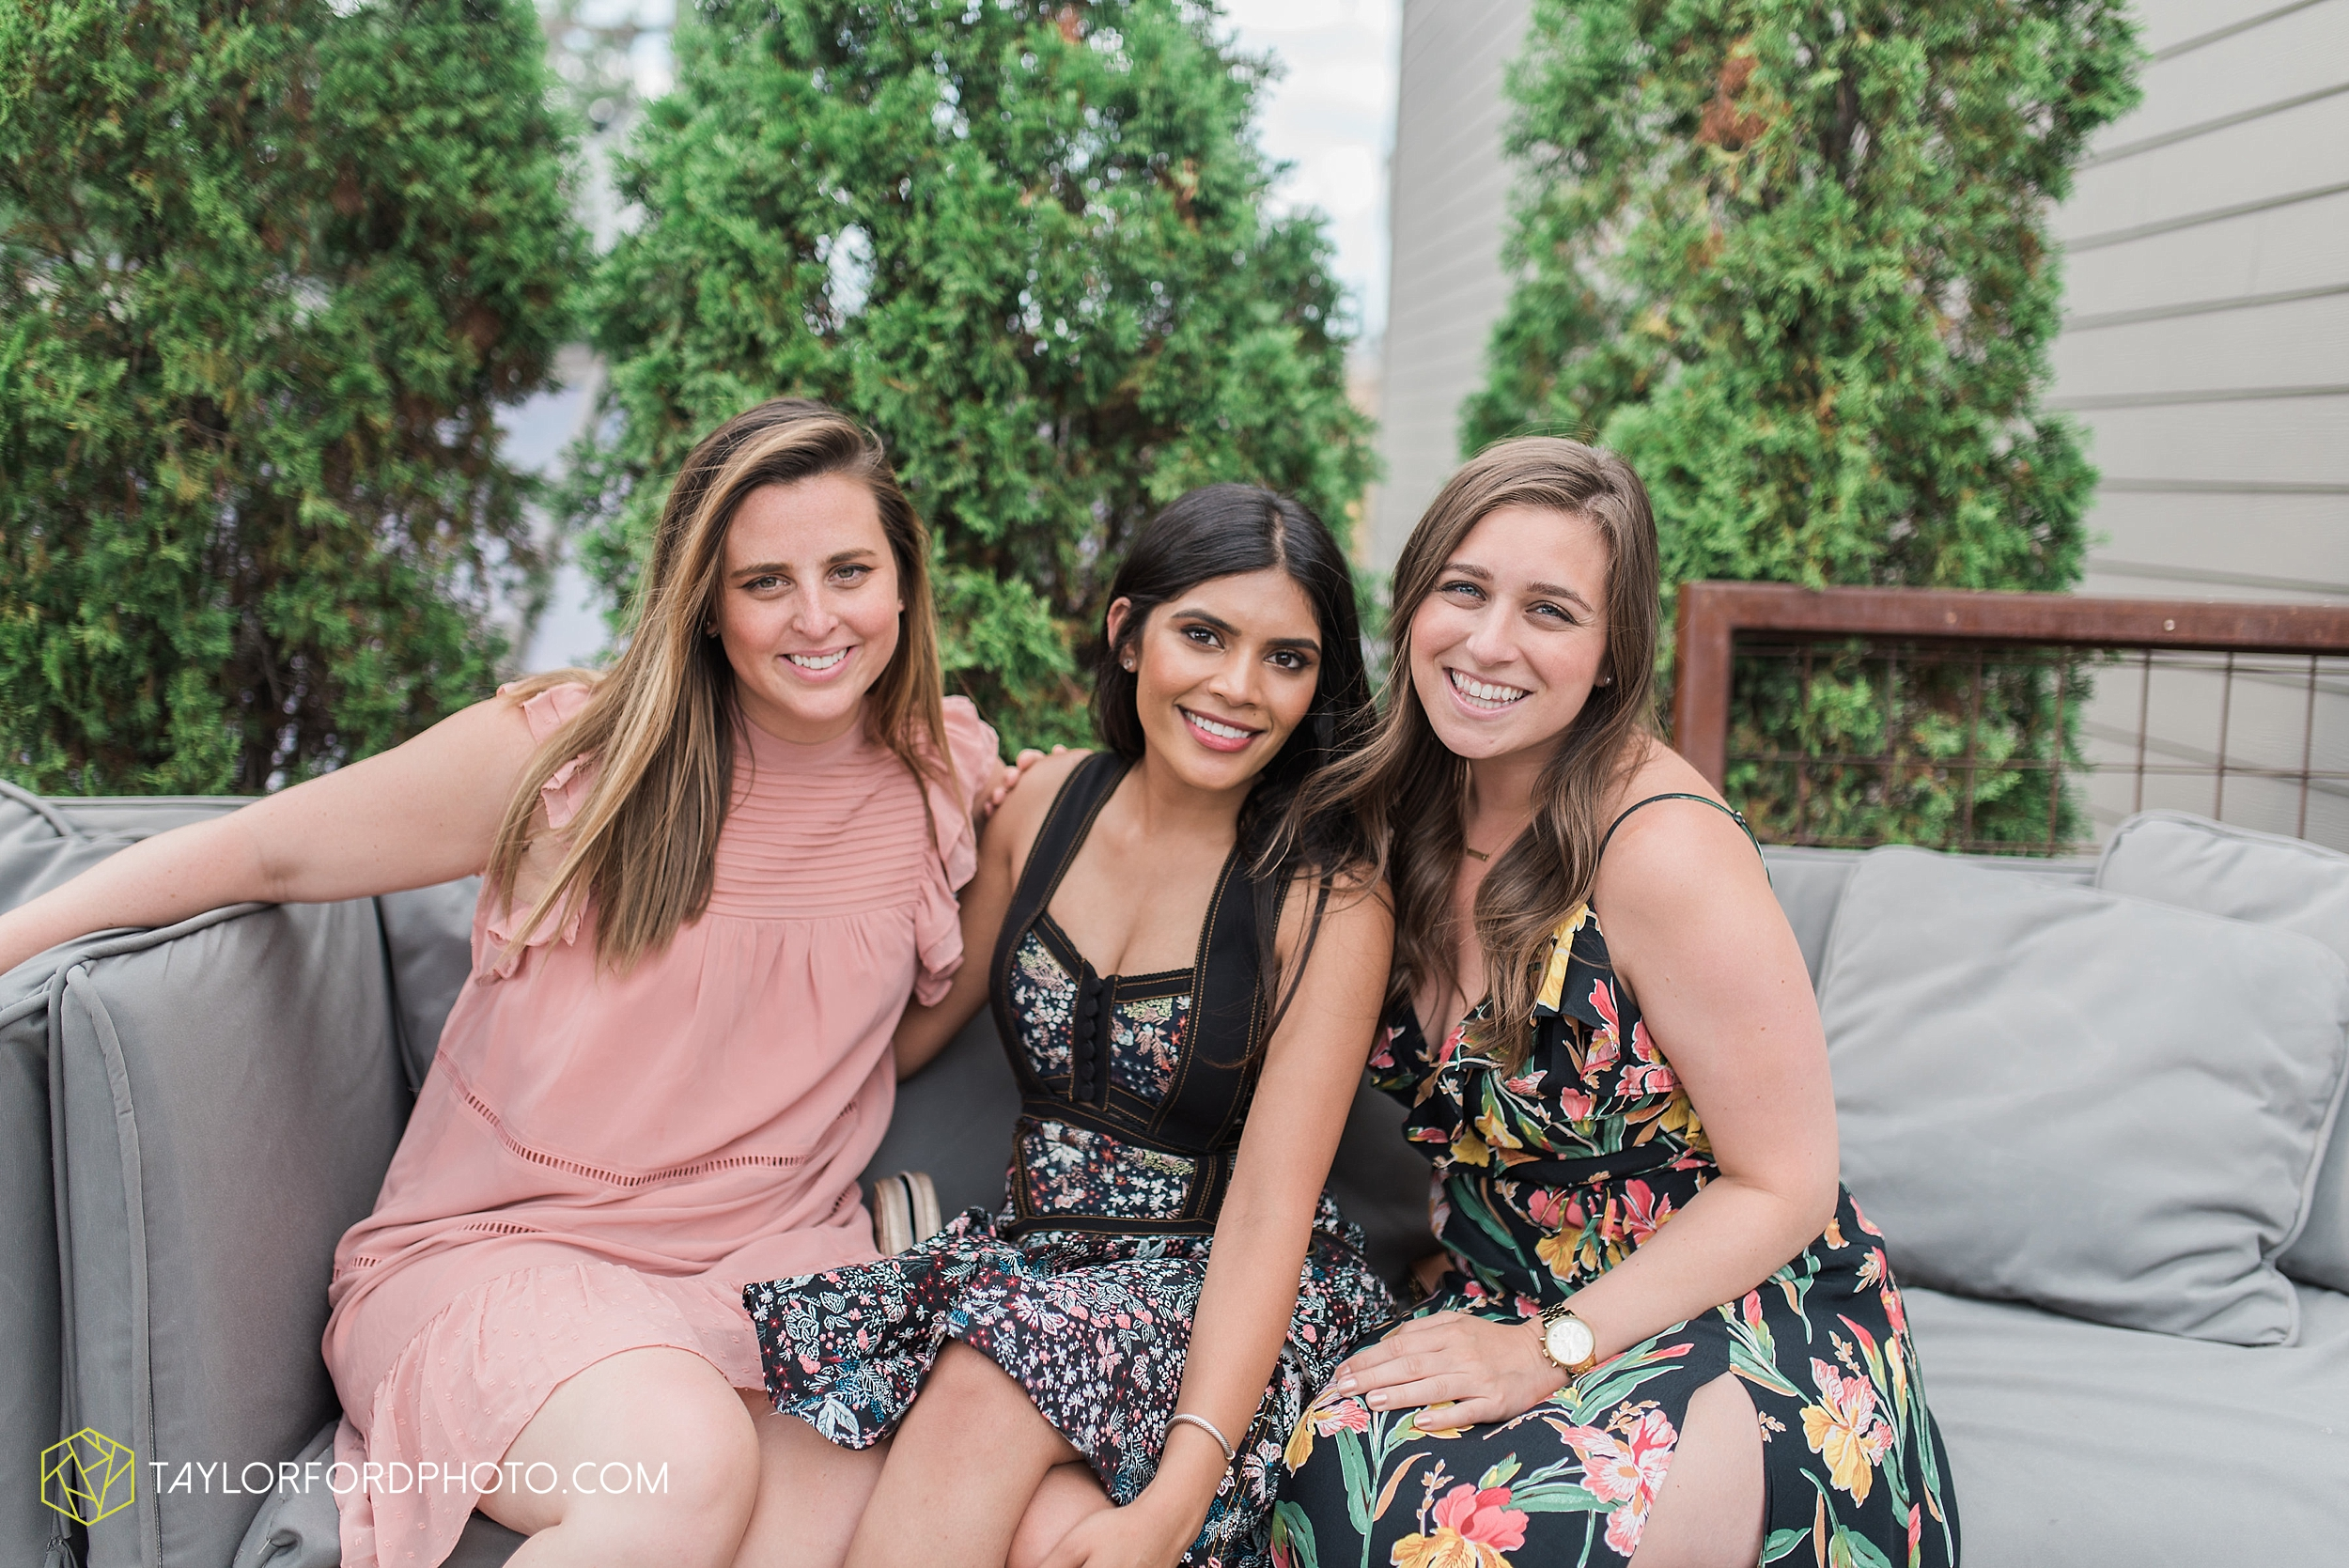 chicago-illinois-bridal-shower-wedding-engagement-photographer-Taylor-Ford-Photography-the-little-goat-diner-rooftop-indian-ceremony_5125.jpg